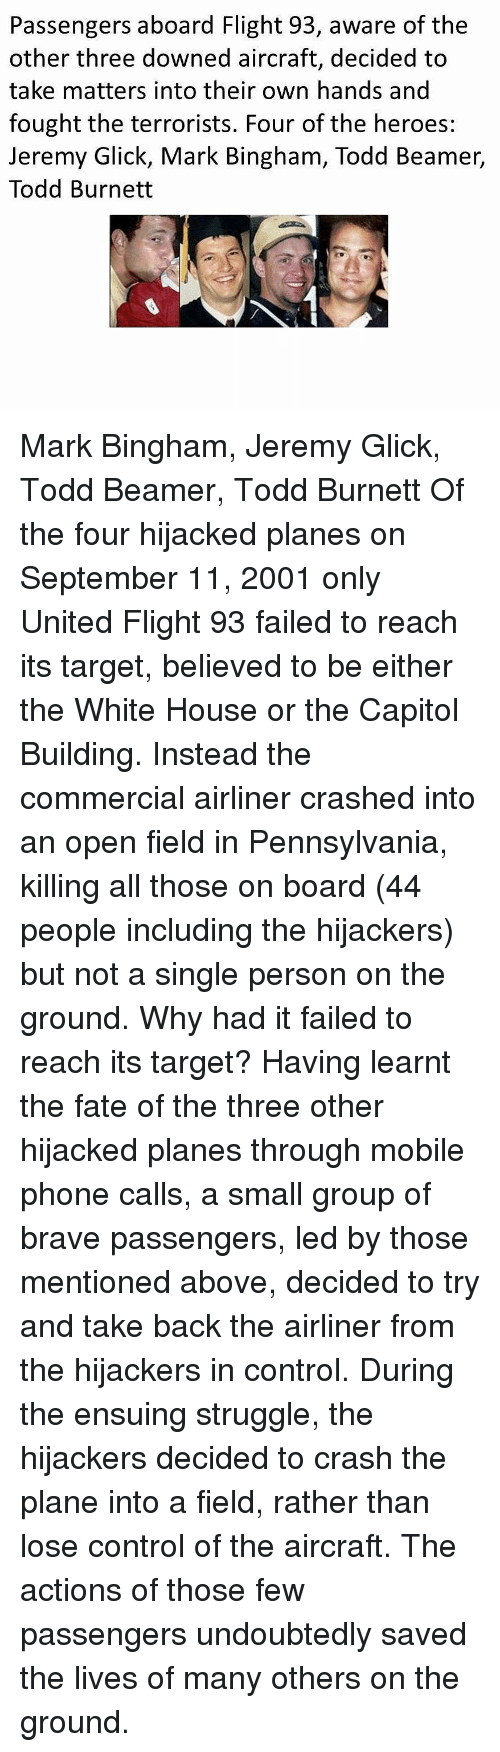 Memes, Phone, and Struggle: Passengers aboard Flight 93, aware of the  other three downed aircraft, decided to  take matters into their own hands and  fought the terrorists. Four of the heroes:  Jeremy Glick, Mark Bingham, Todd Beamer,  Todd Burnett Mark Bingham, Jeremy Glick, Todd Beamer, Todd Burnett Of the four hijacked planes on September 11, 2001 only United Flight 93 failed to reach its target, believed to be either the White House or the Capitol Building. Instead the commercial airliner crashed into an open field in Pennsylvania, killing all those on board (44 people including the hijackers) but not a single person on the ground. Why had it failed to reach its target? Having learnt the fate of the three other hijacked planes through mobile phone calls, a small group of brave passengers, led by those mentioned above, decided to try and take back the airliner from the hijackers in control. During the ensuing struggle, the hijackers decided to crash the plane into a field, rather than lose control of the aircraft. The actions of those few passengers undoubtedly saved the lives of many others on the ground.